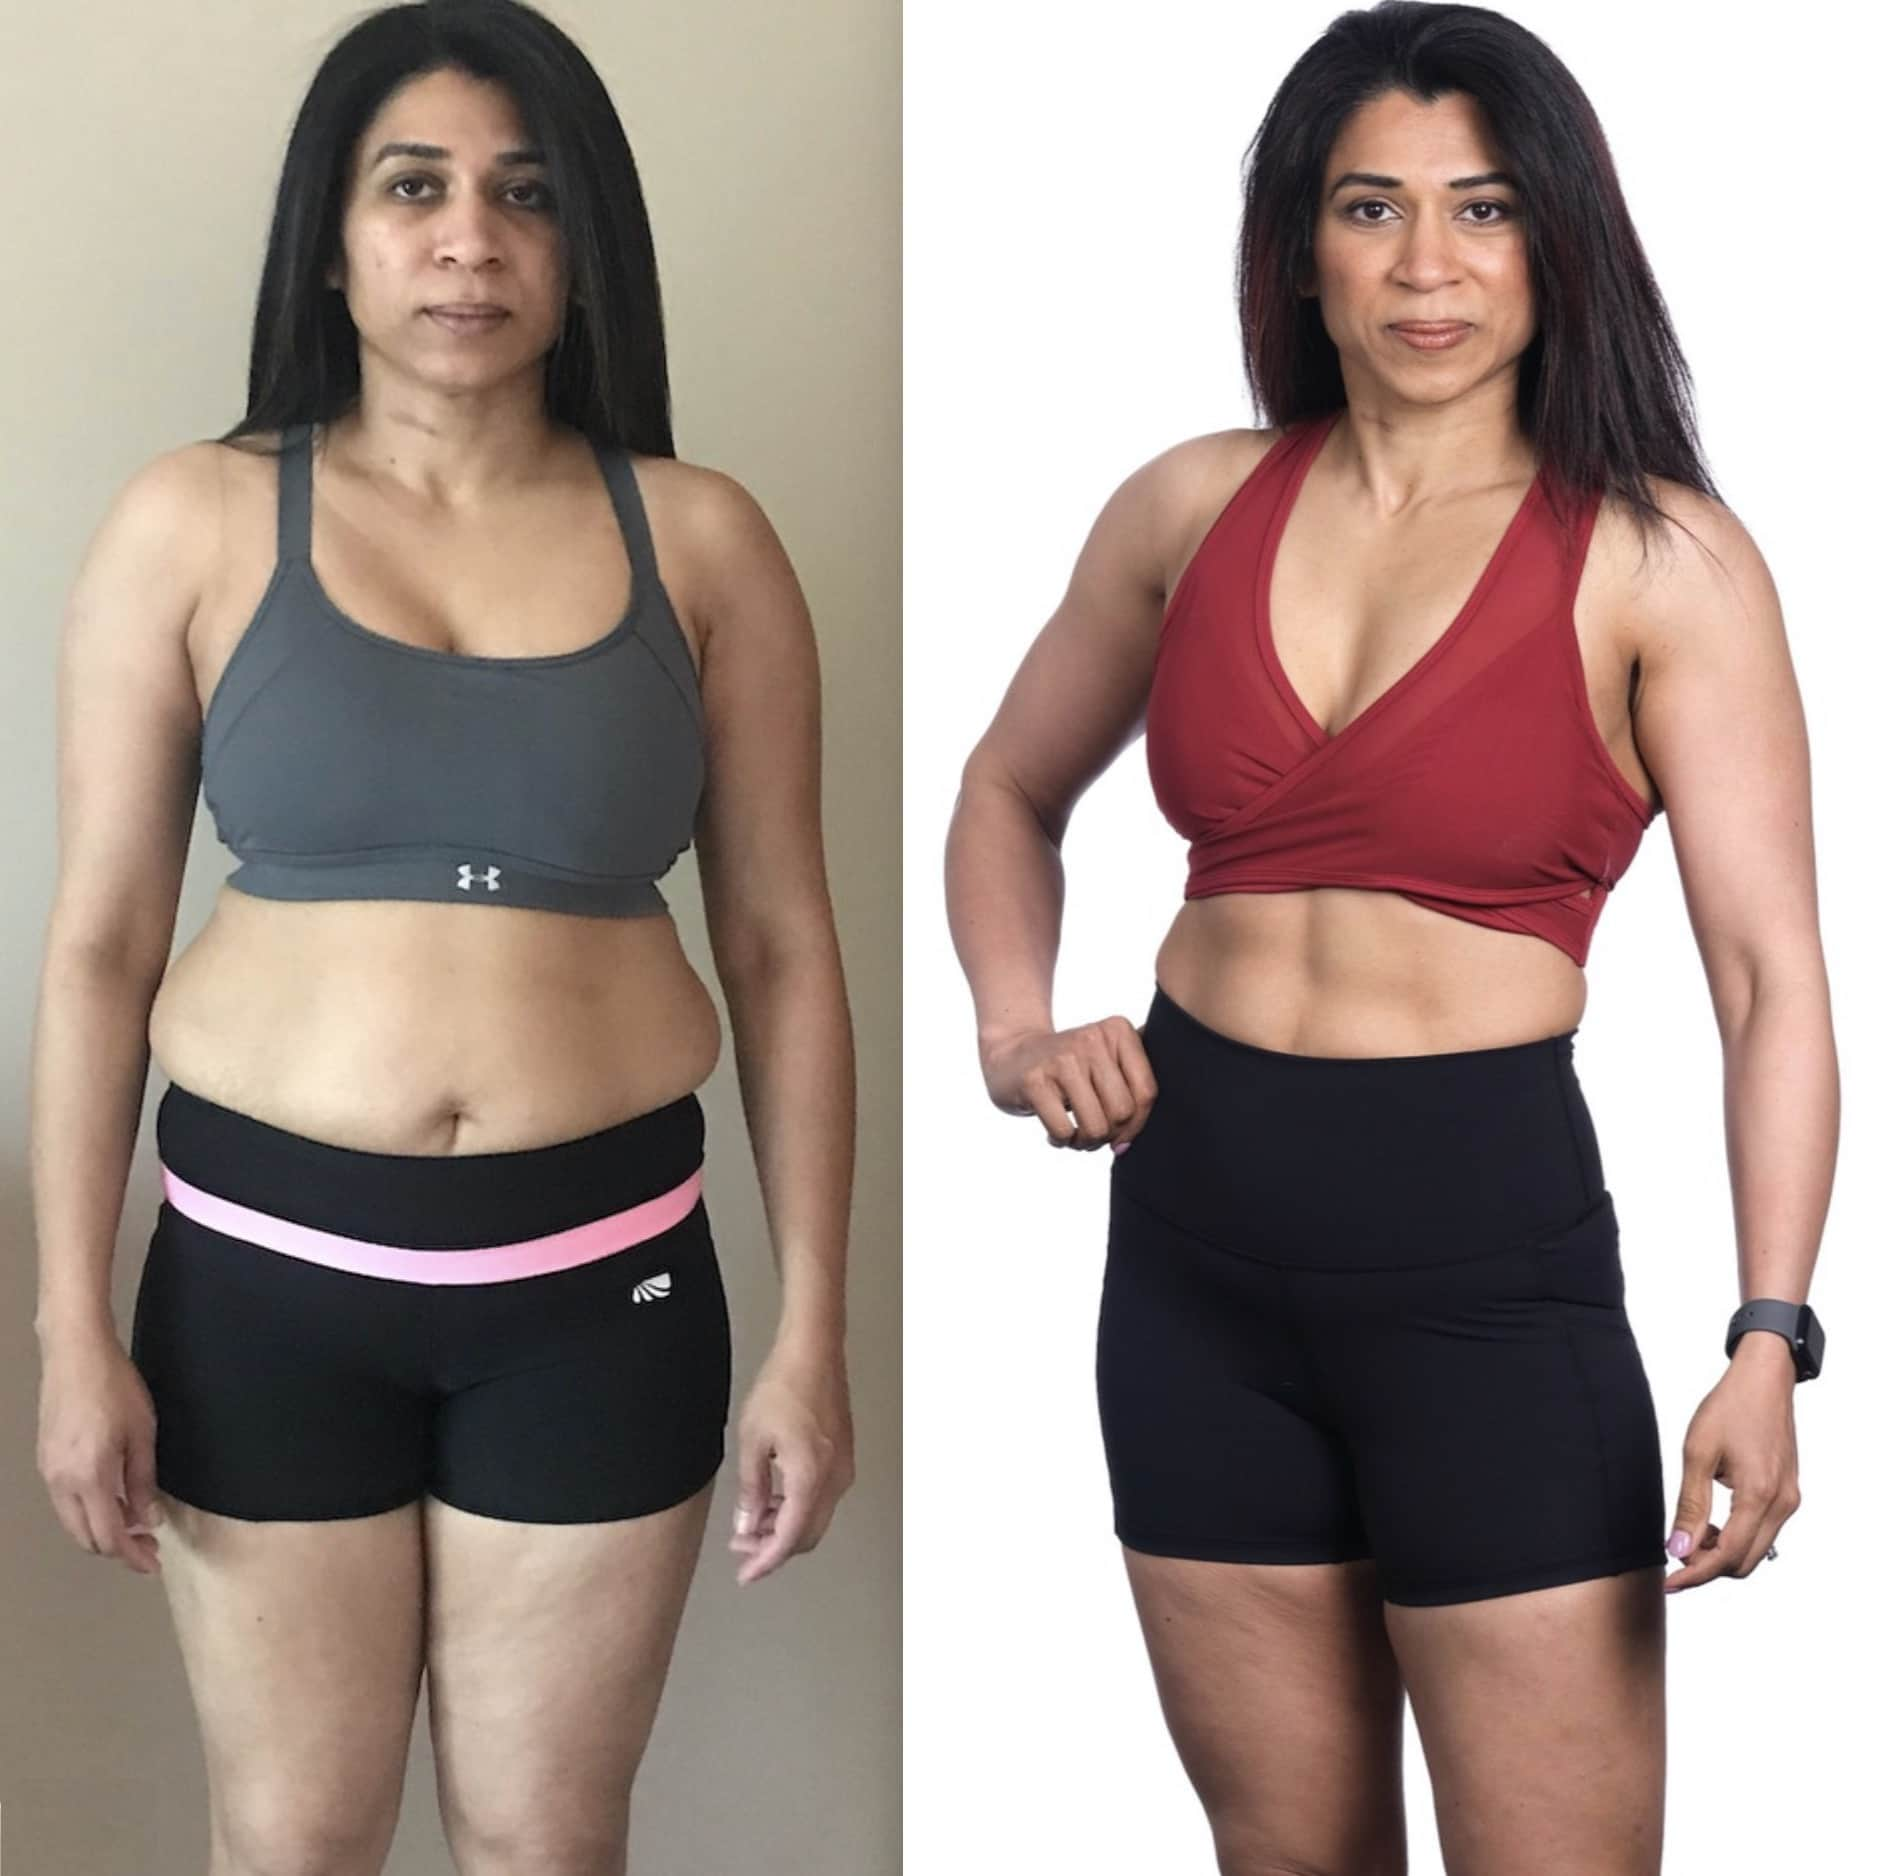 25 pound weight loss before and after